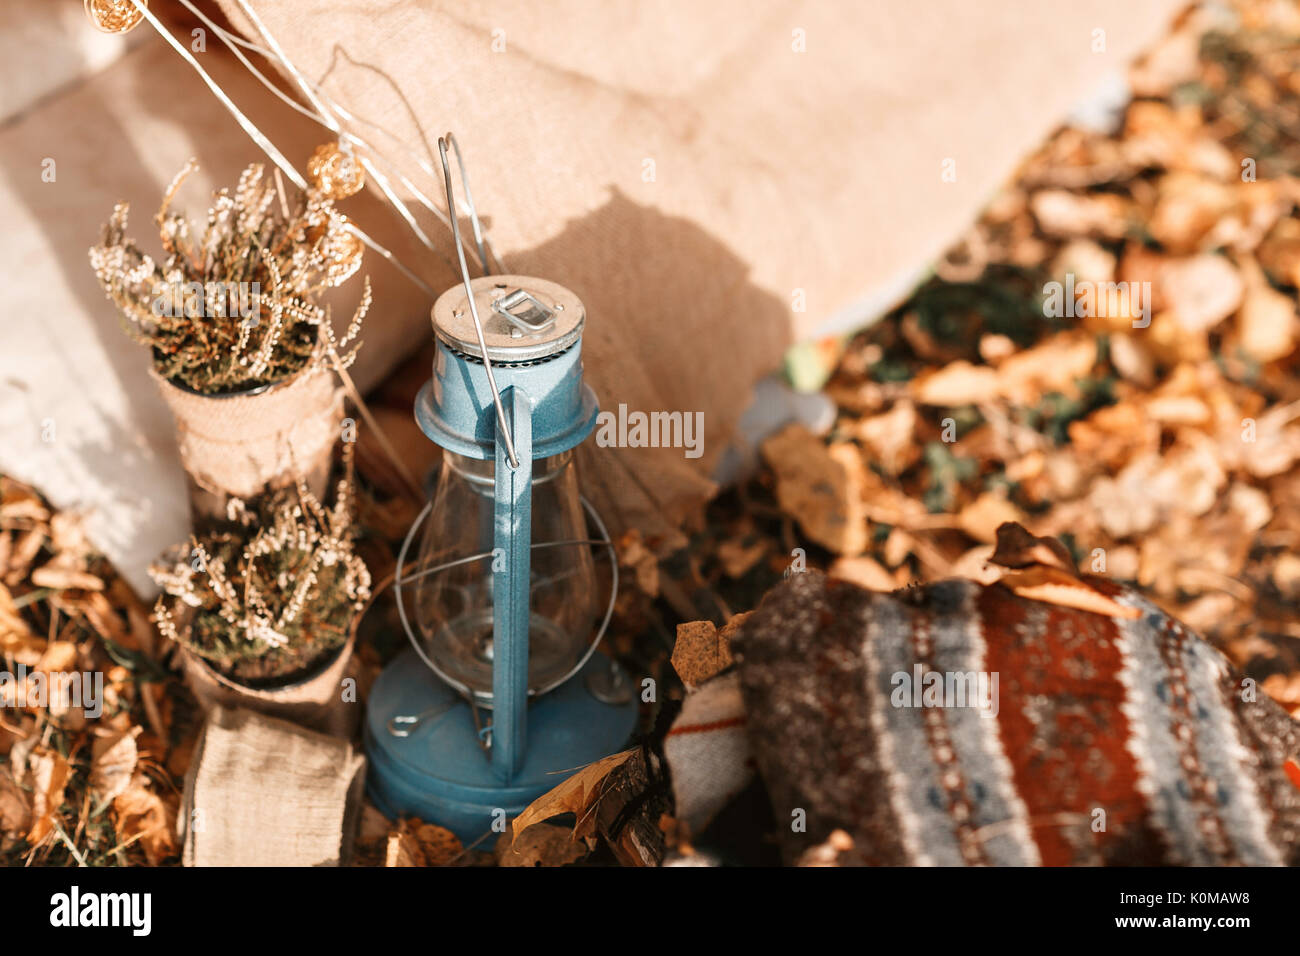 kerosene lamp. old tent in the autumn forest, home for adventure and travel - Stock Image